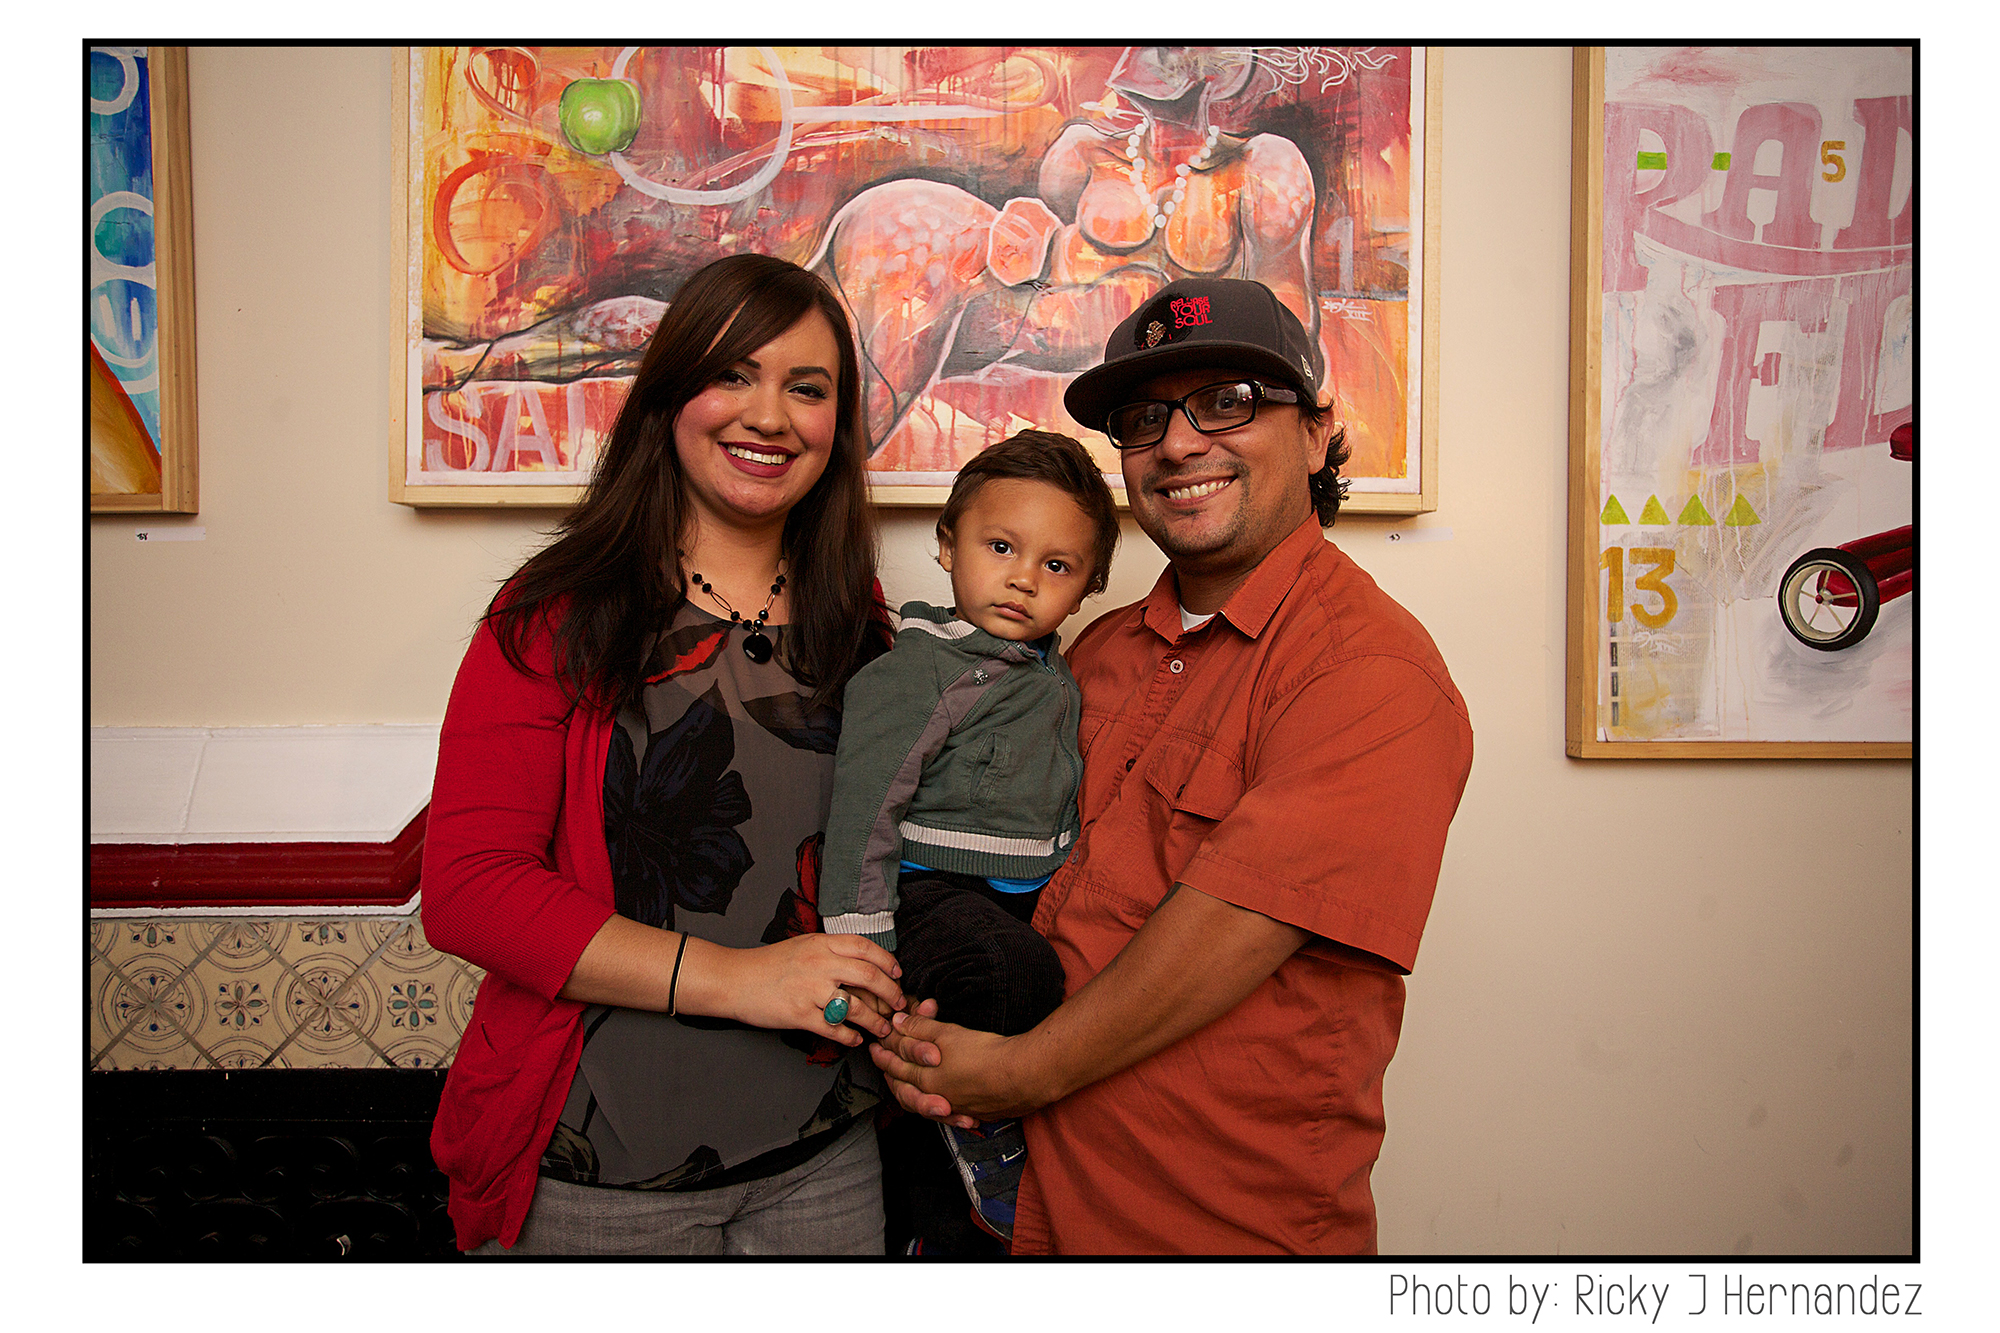 Ricky-J-Hernandez-photography-Oh-poop-I-have-Lupus-art-show-for-Delia-sweet-tooth-in-Privy-studio-Los-Angeles-CA-051